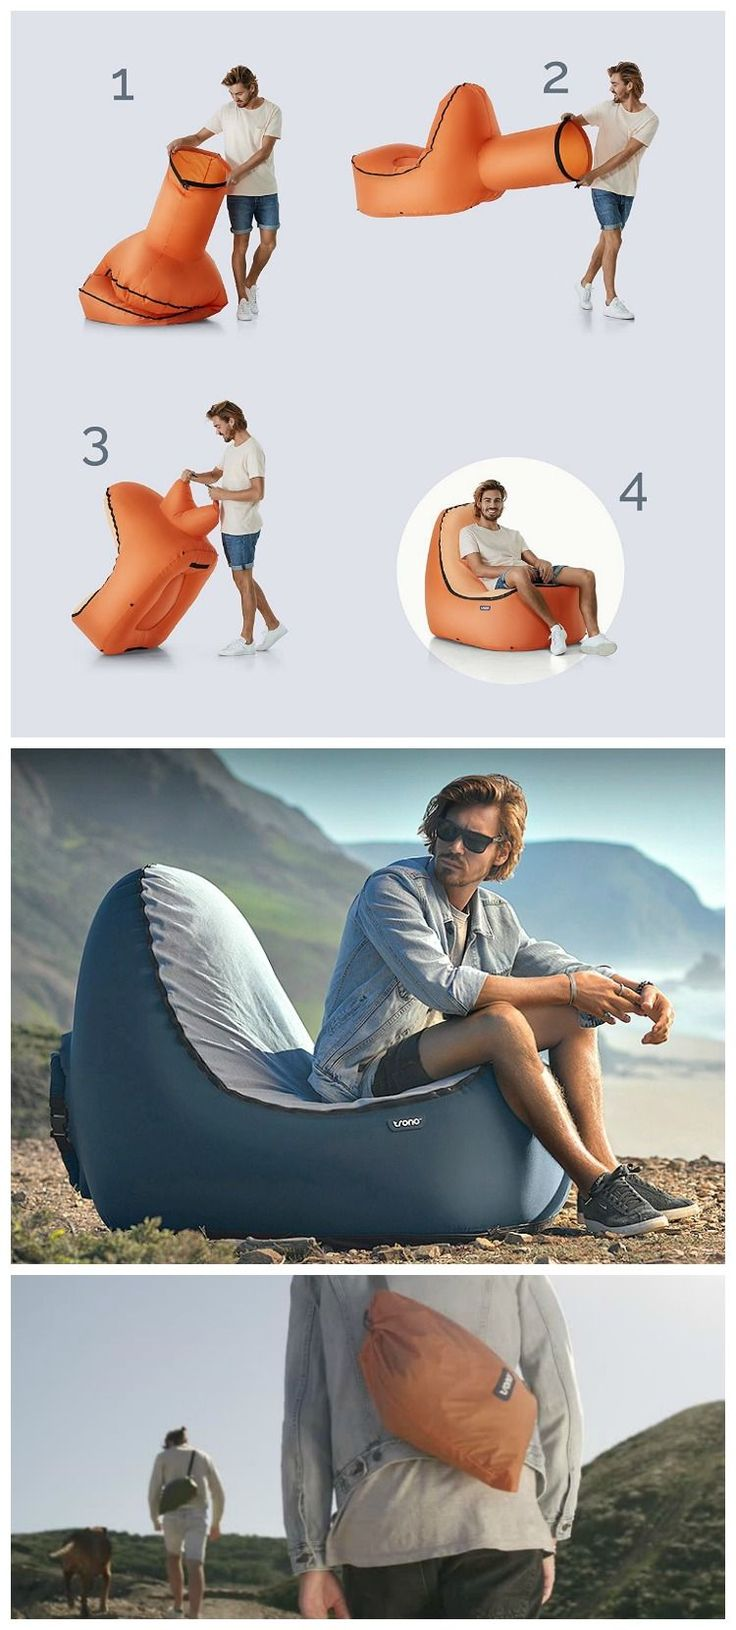 TRONO Inflatable Lounge Chair with back support. Don't settle for laying on a hammock lounger. Hangout on an easy-inflate, comfy, compact, lightweight and durable outdoor sofa couch instead!